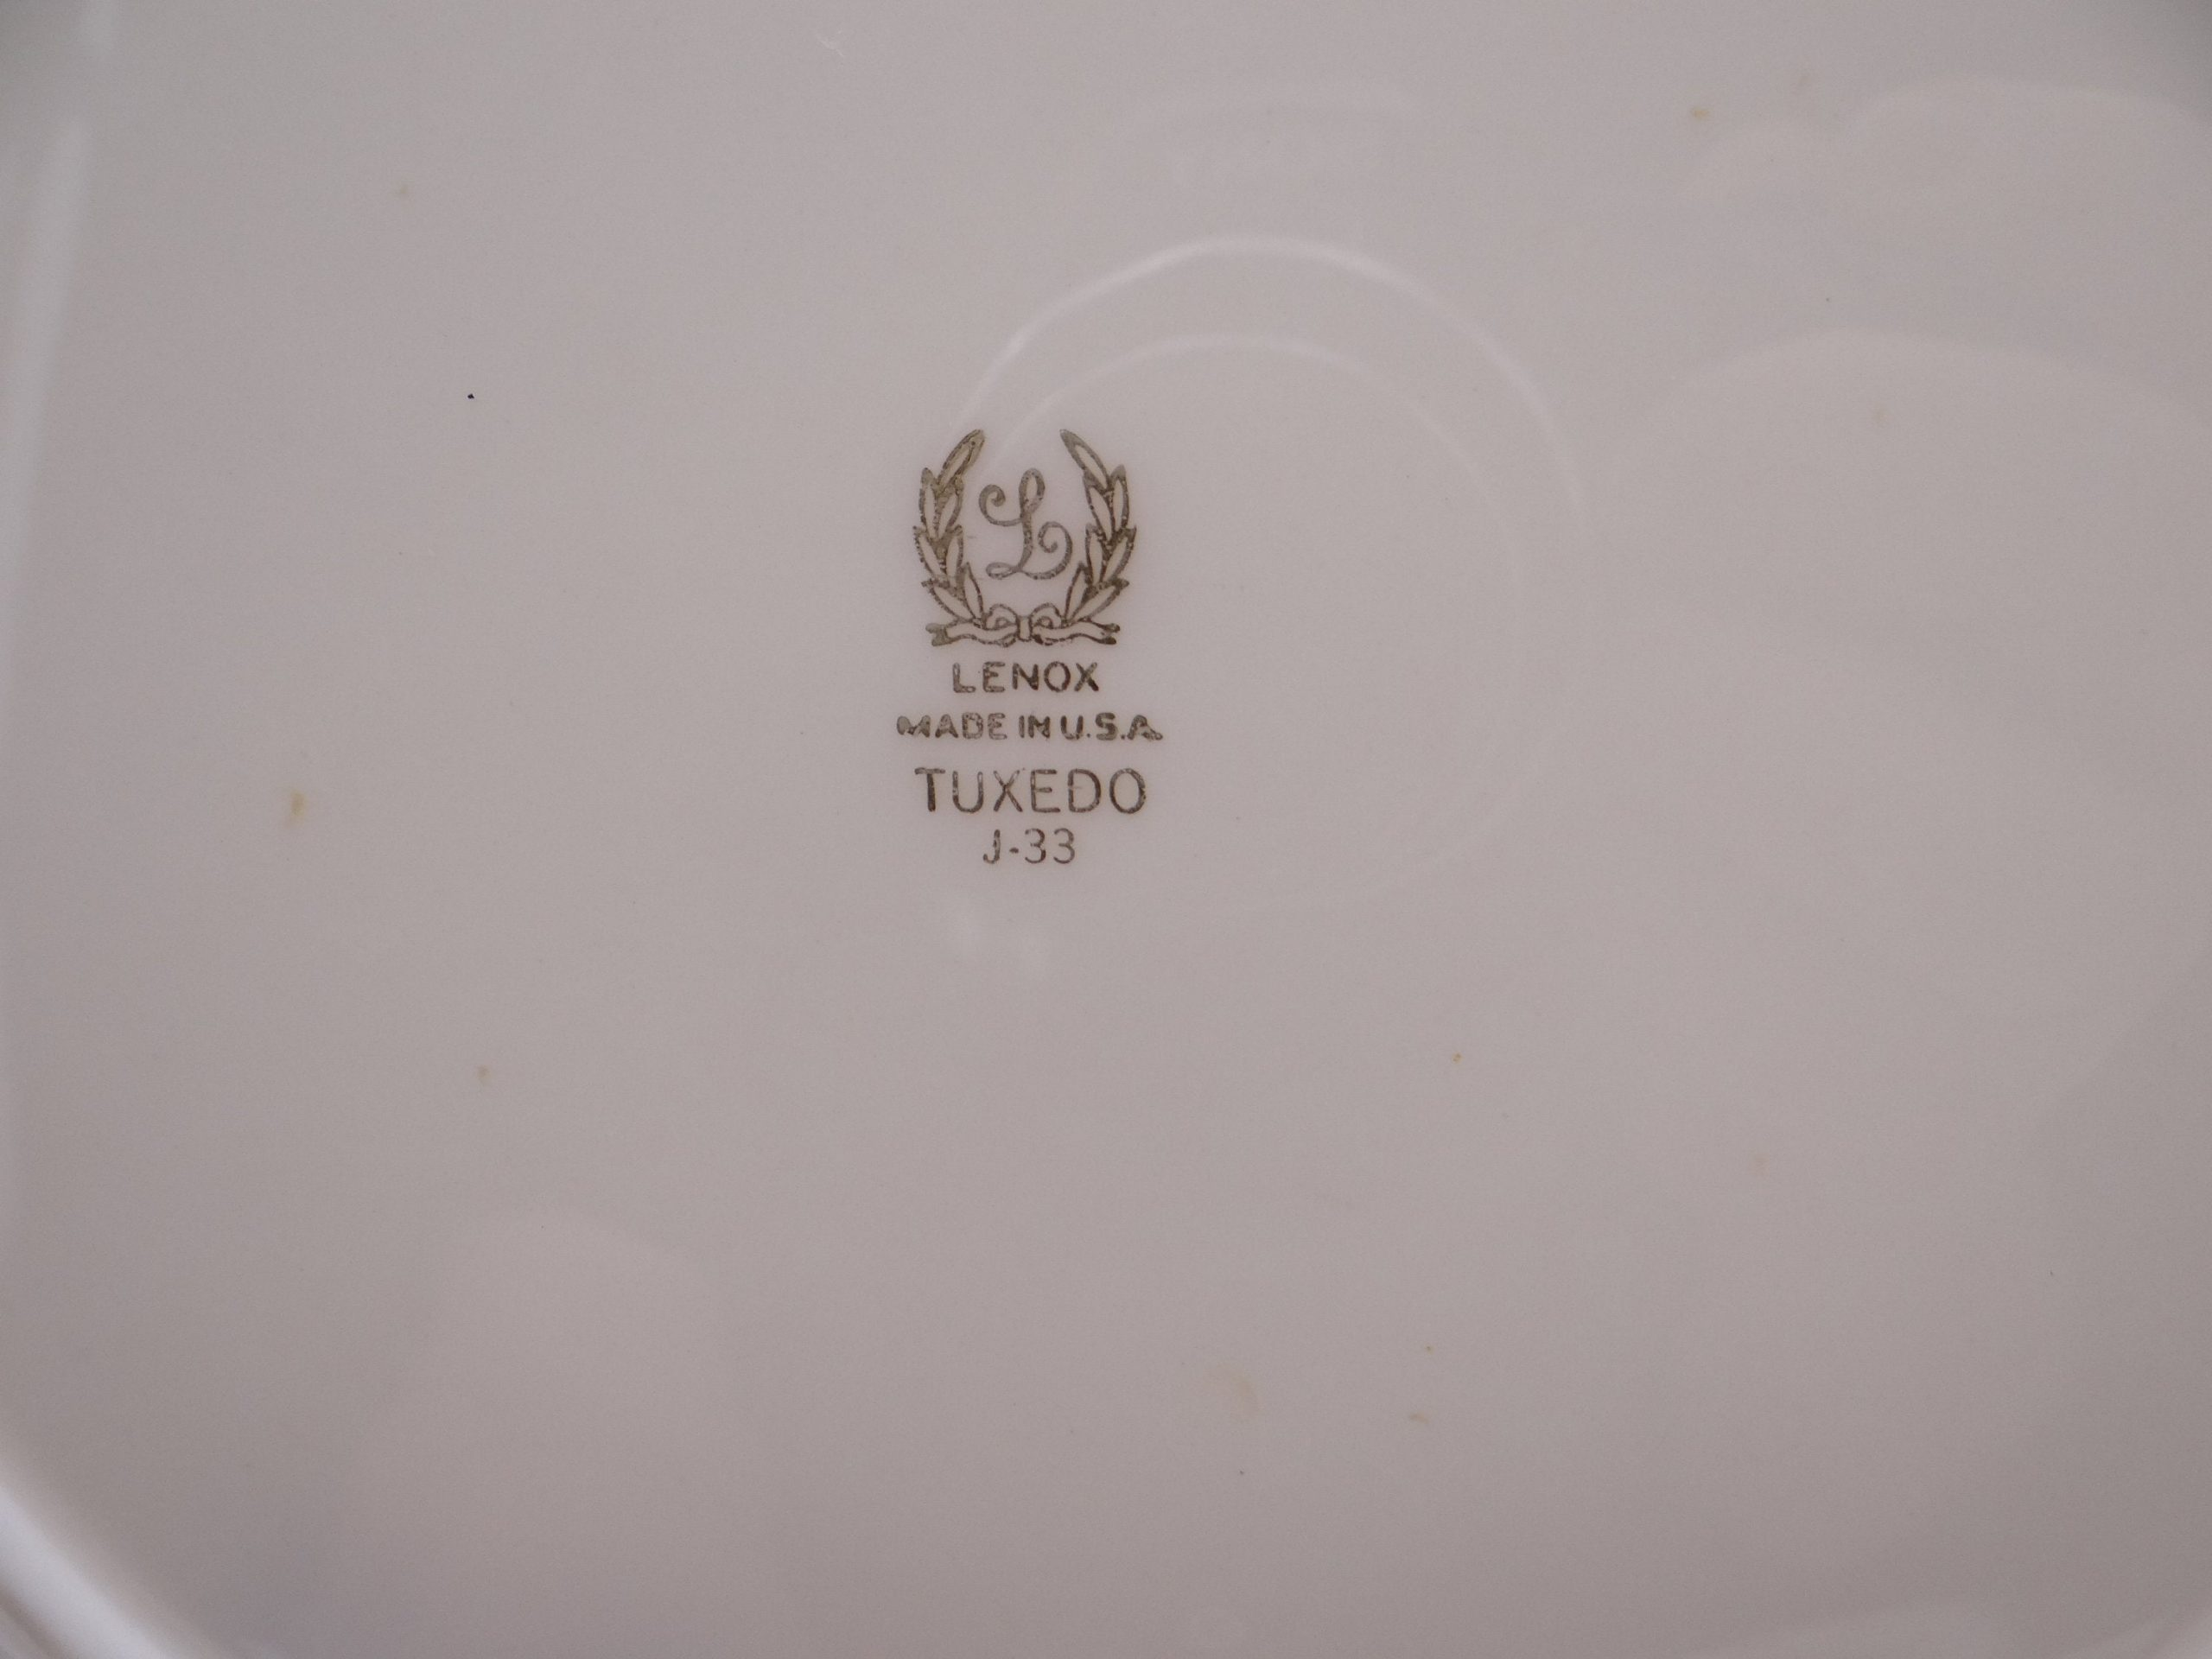 Vintage Lenox Tuxedo Salad or Luncheon Plate 13 Available